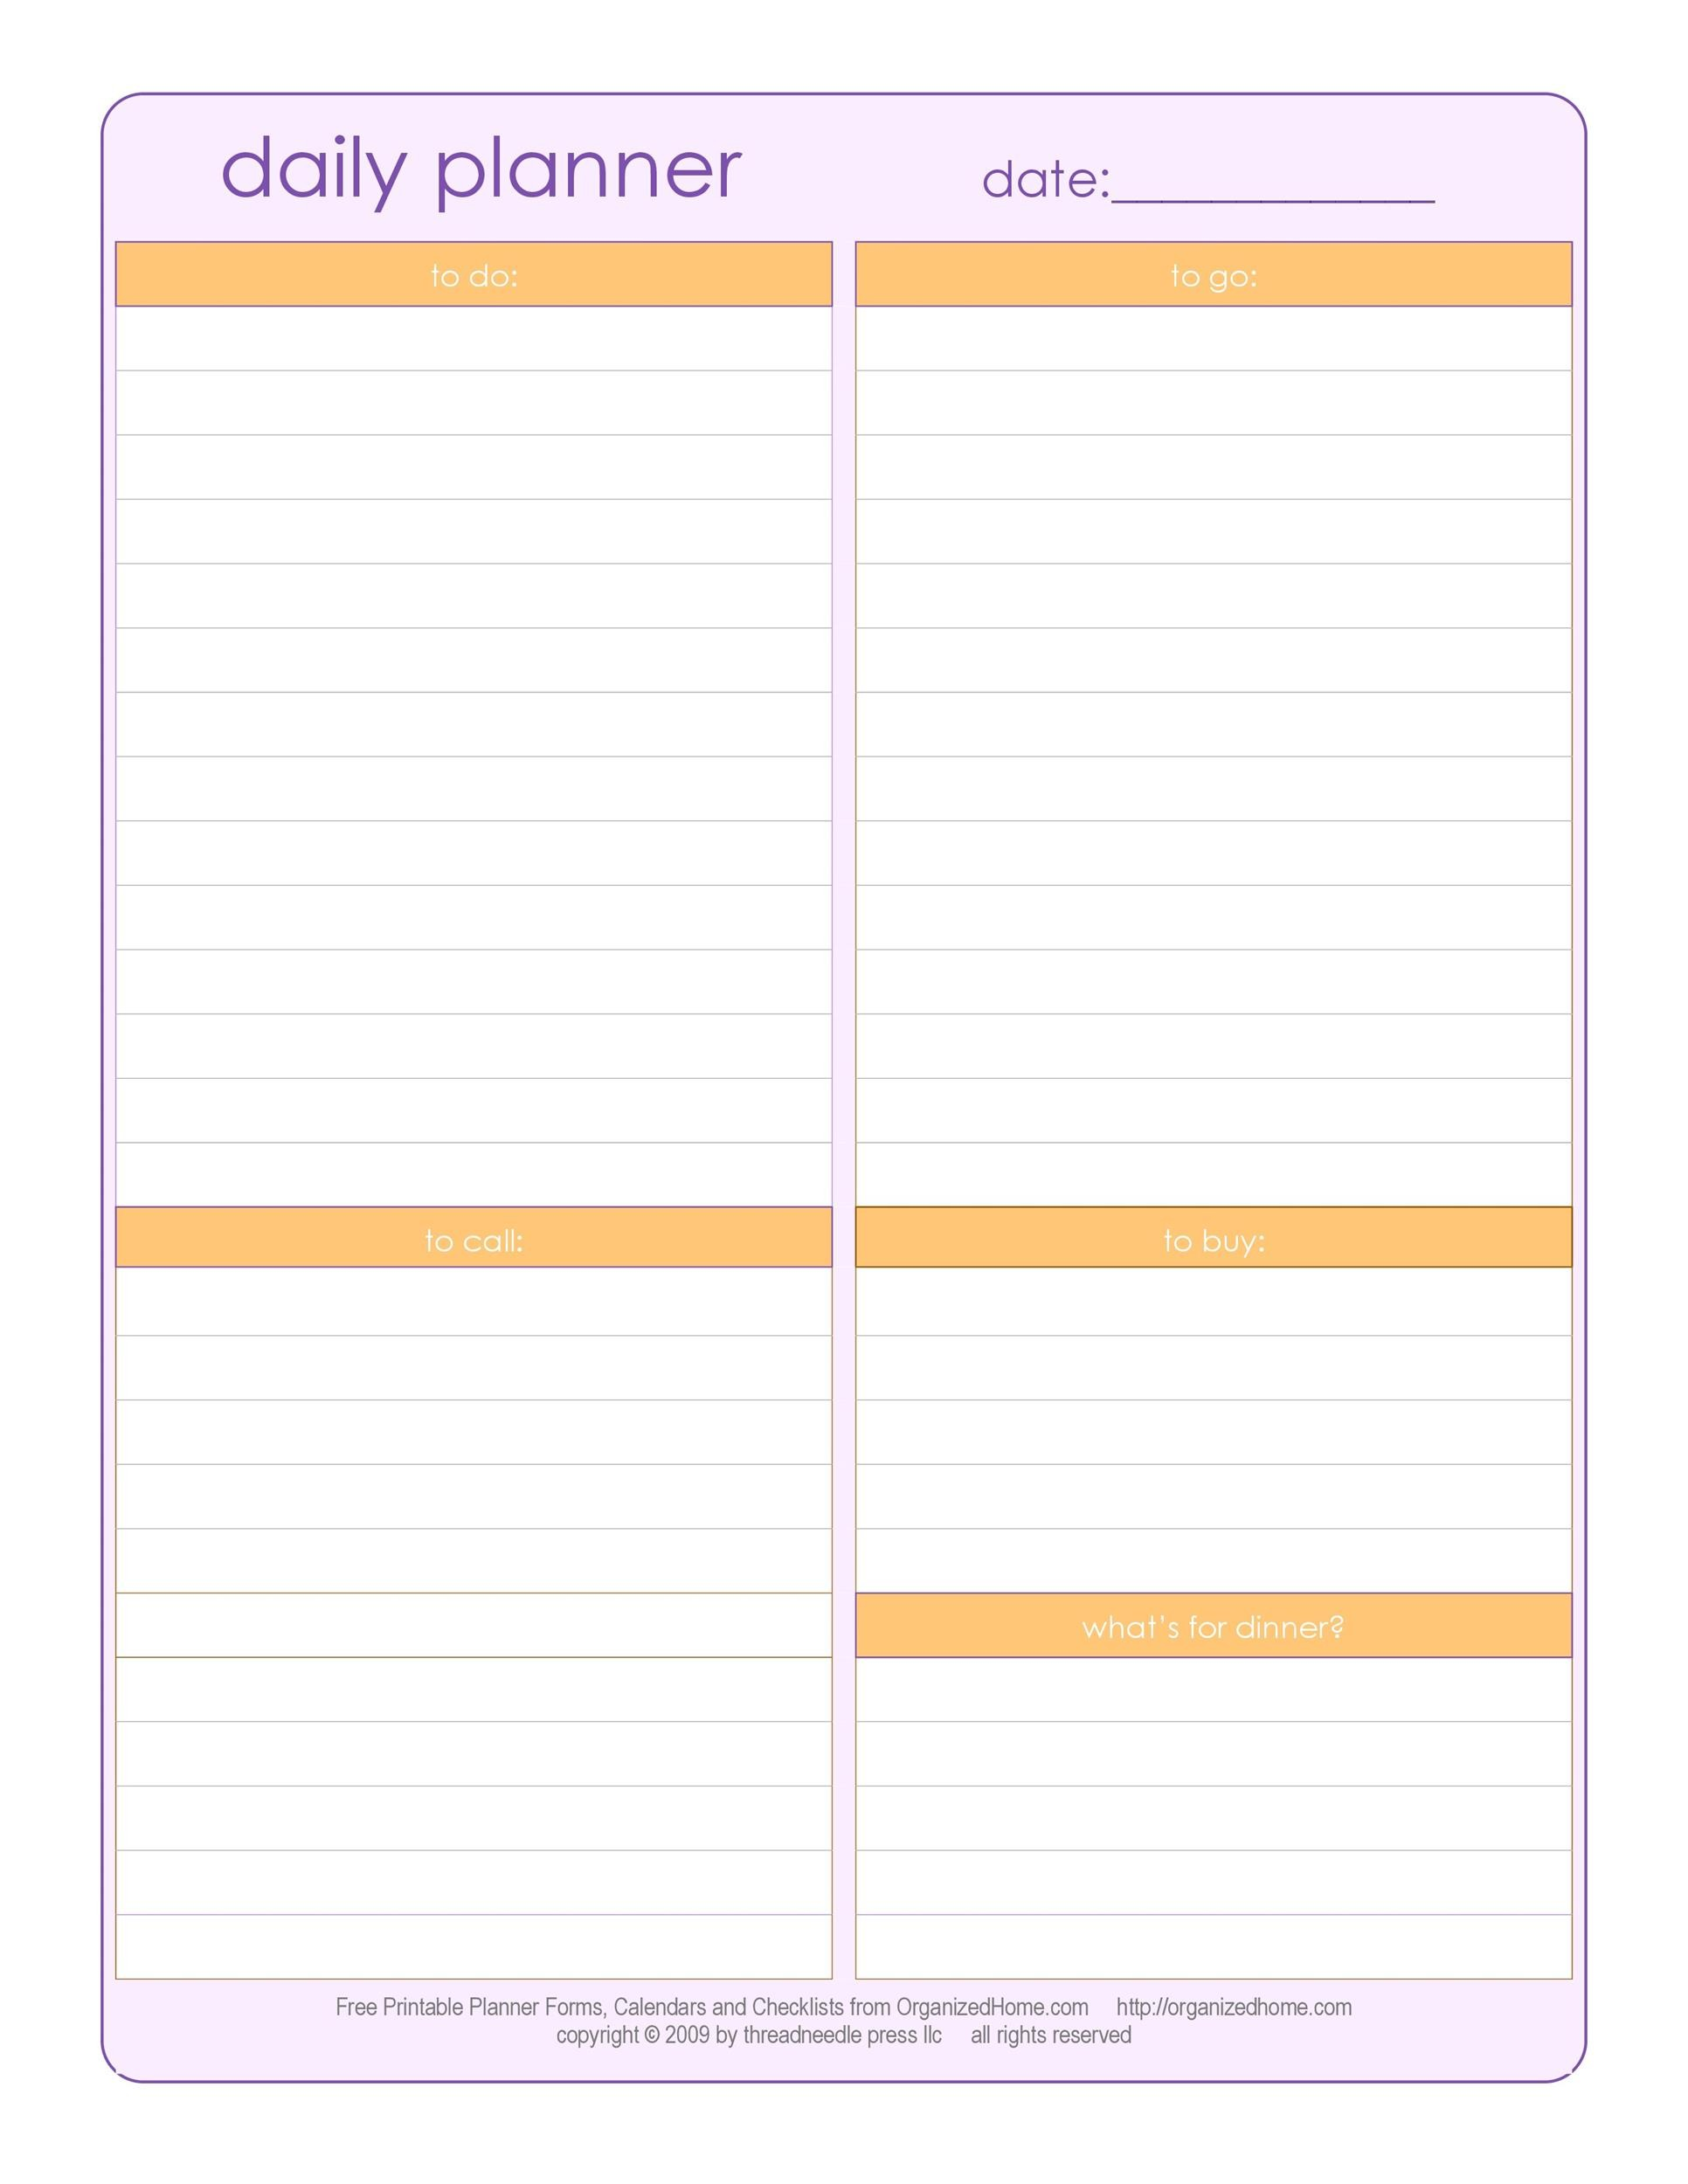 Printable Daily Planner Template 02  Daily Scheduler Template